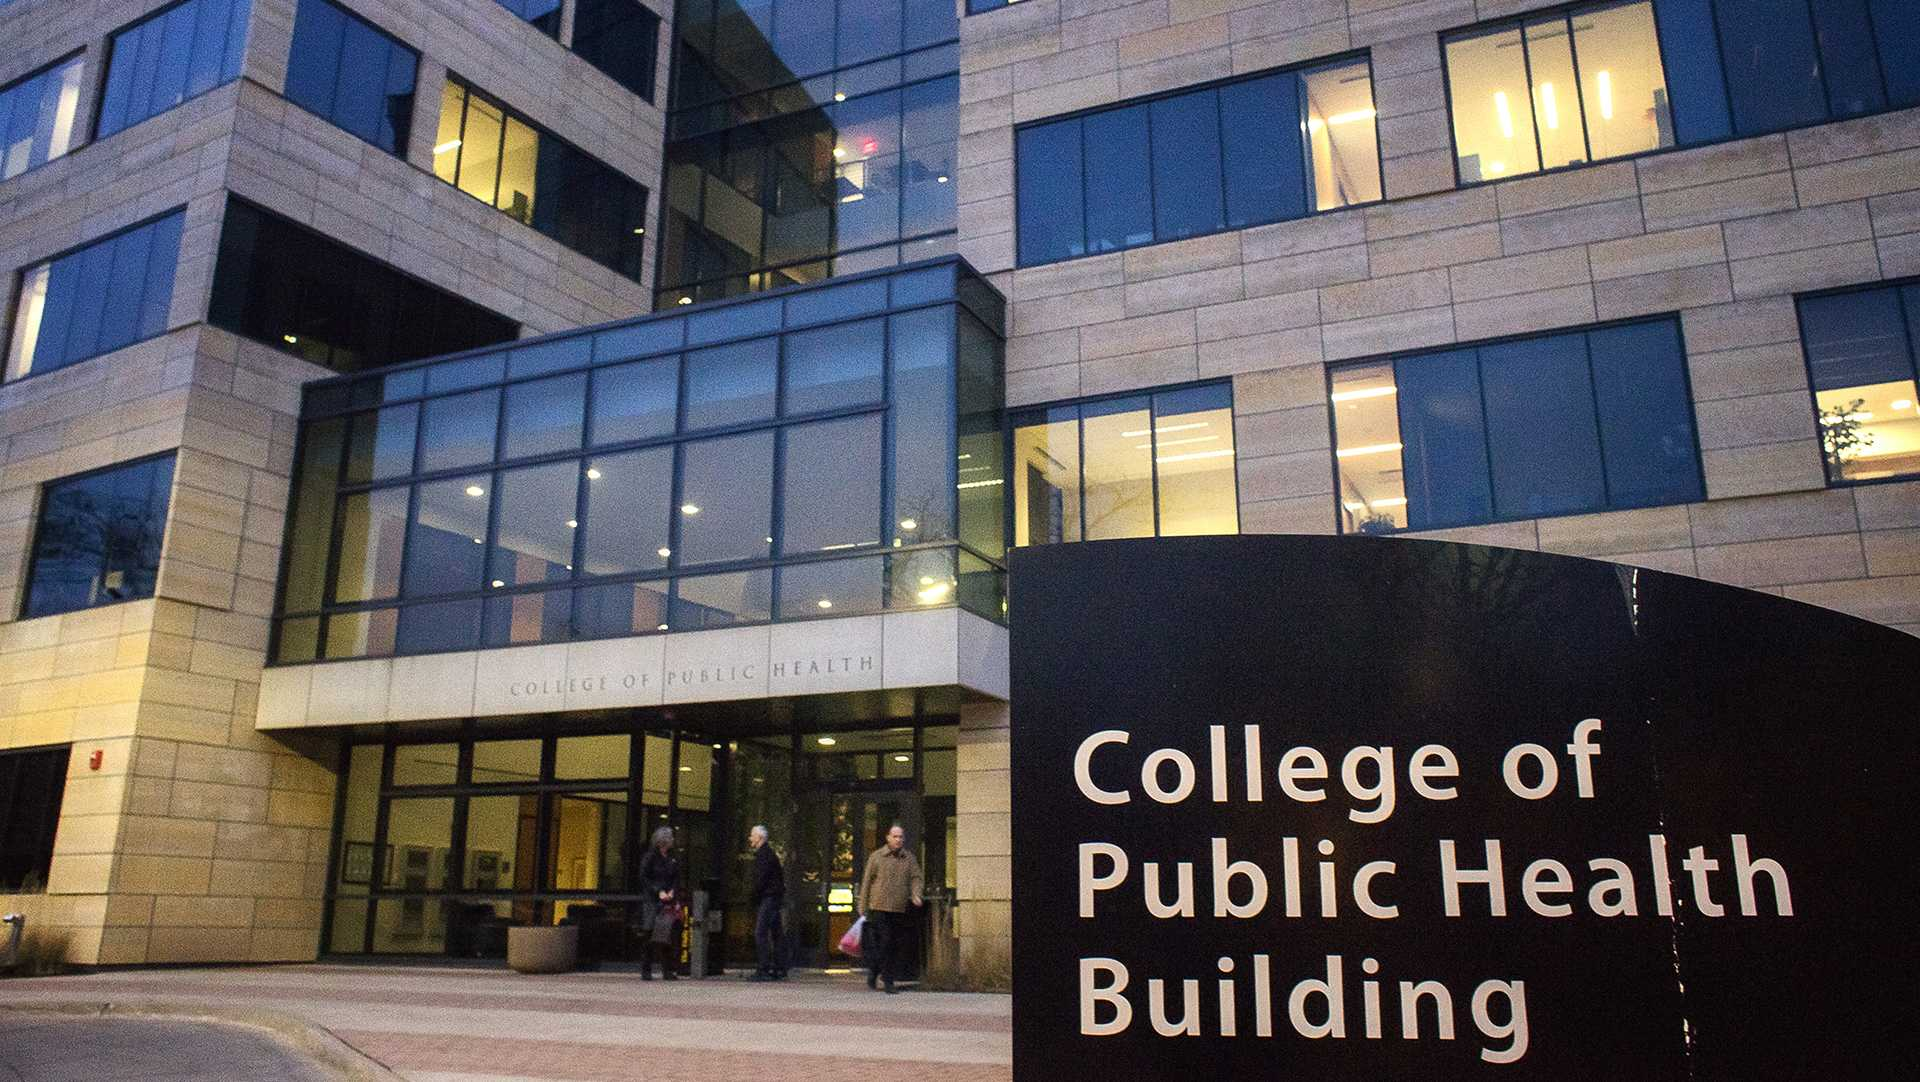 The College of Public Health Building as seen on Thursday, Dec. 14, 2017. (James Year/The Daily Iowan)